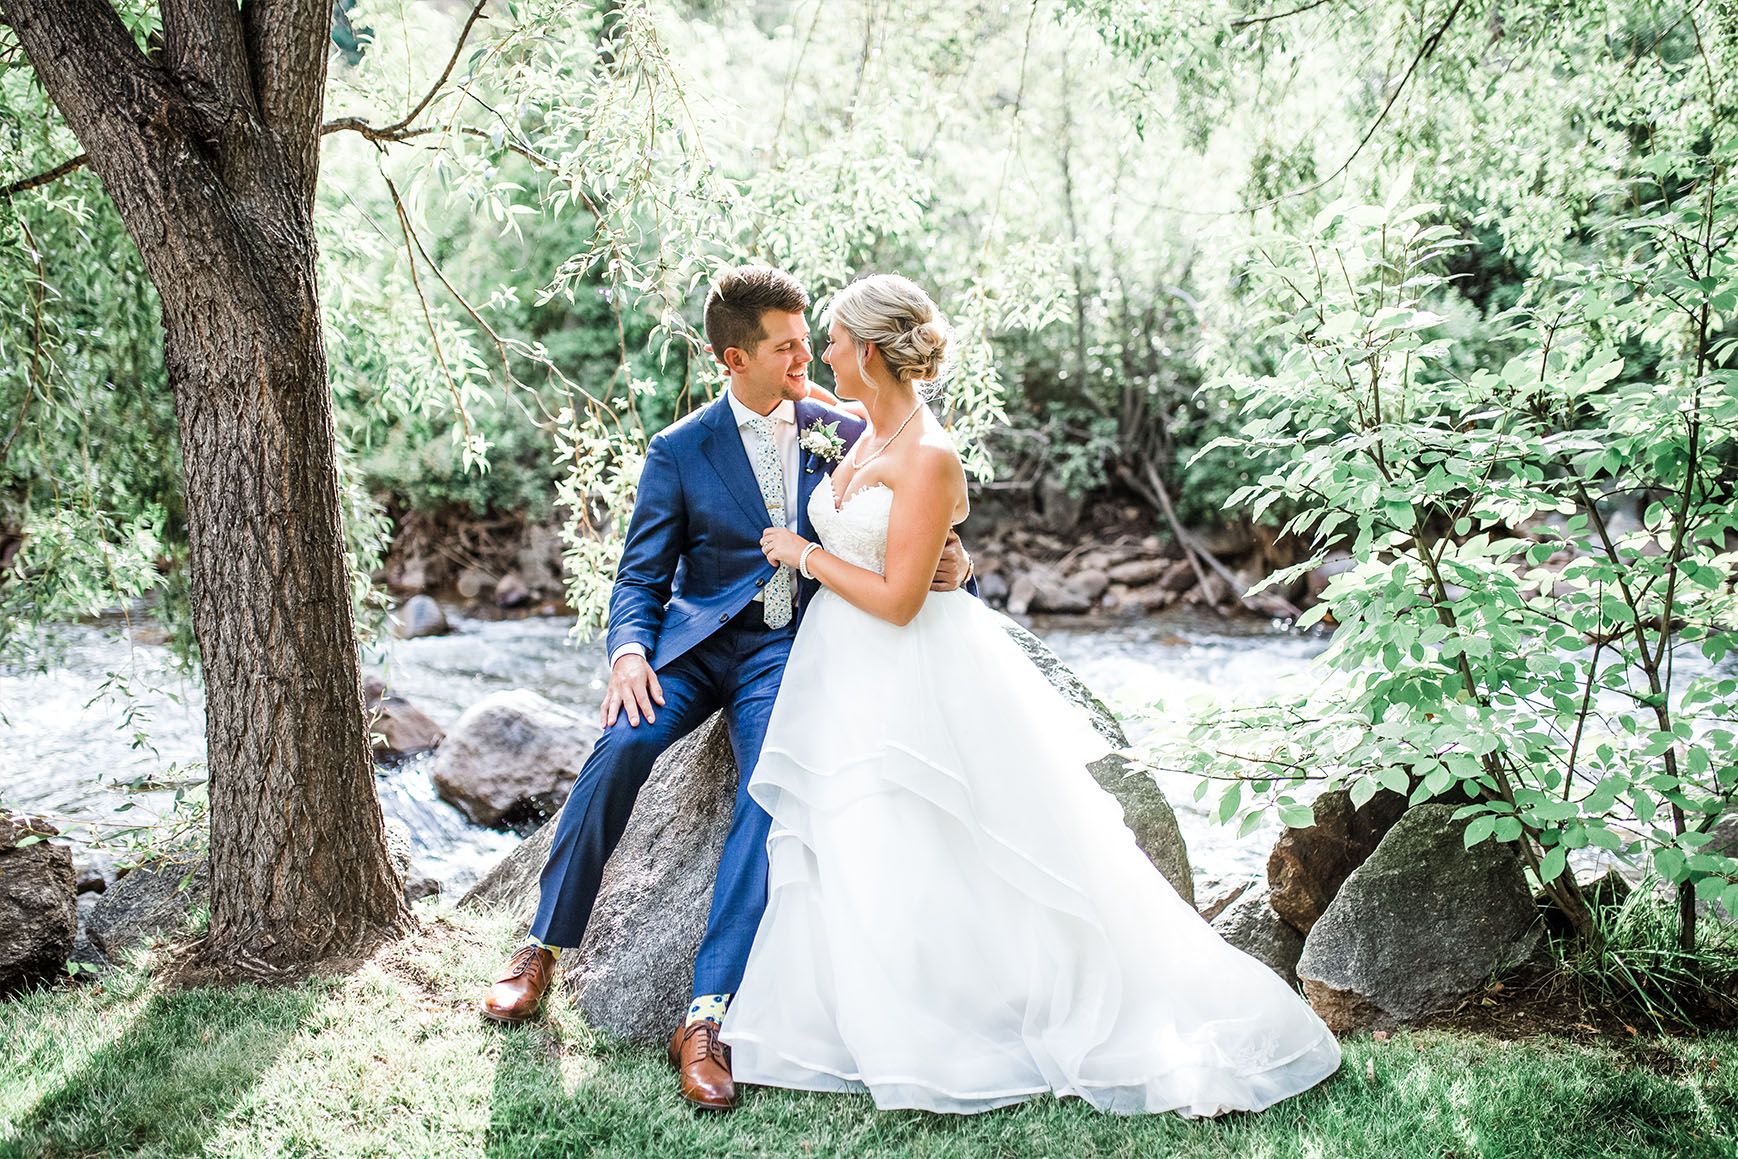 Couple Sitting by Creek - Boulder Creek - Boulder, Colorado - Boulder County - Wedgewood Weddings